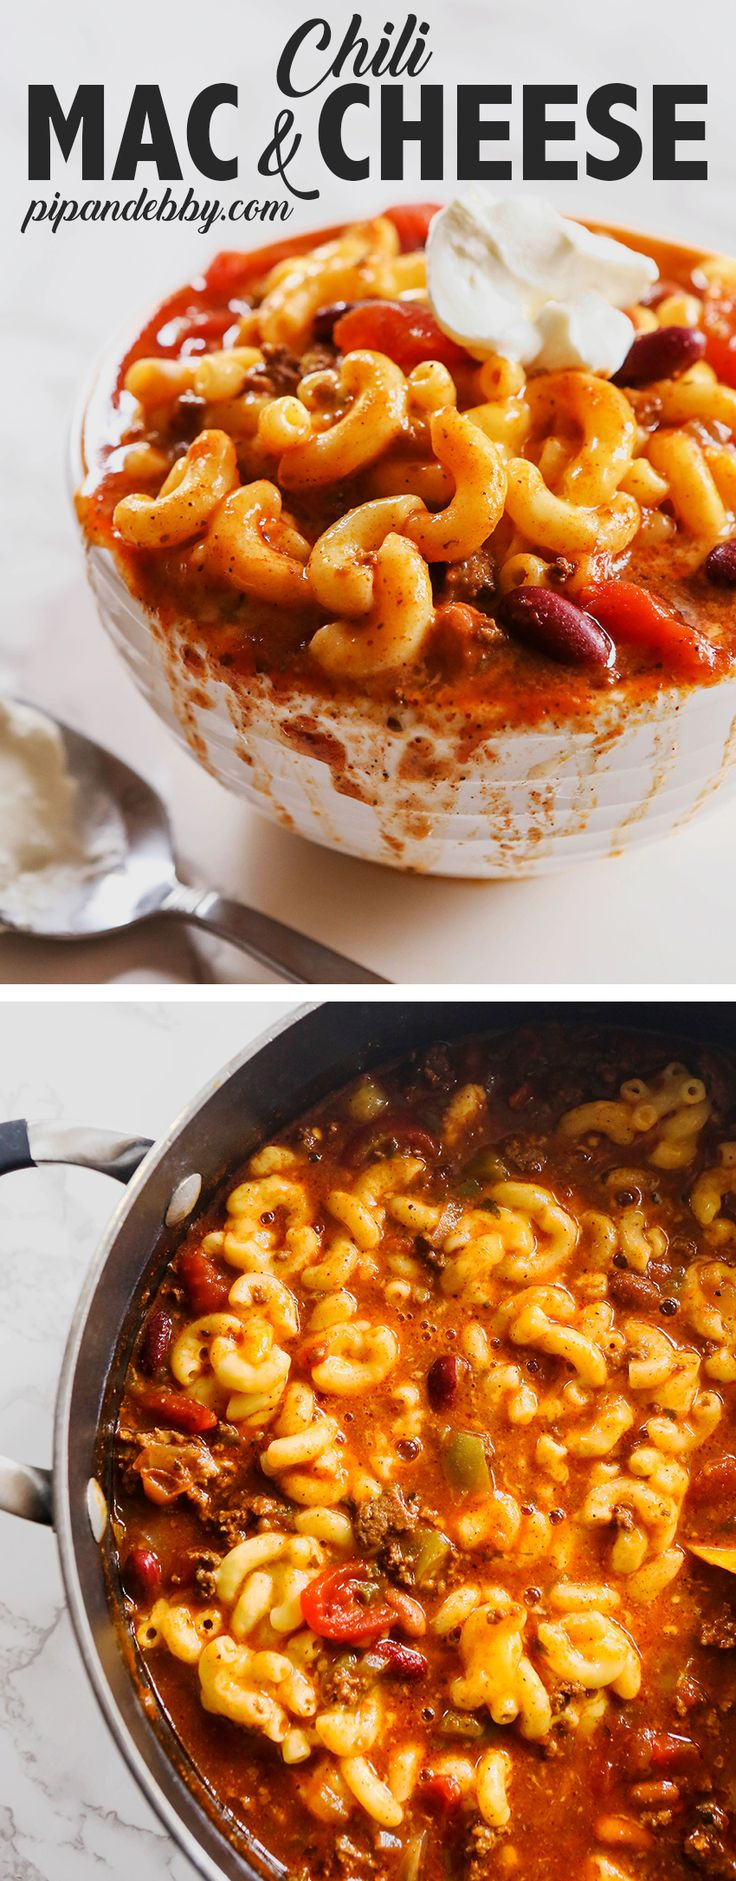 Chili Mac and Cheese Recipe | Double the comfort food in this delicious dinner! #comfortfood #chilimac